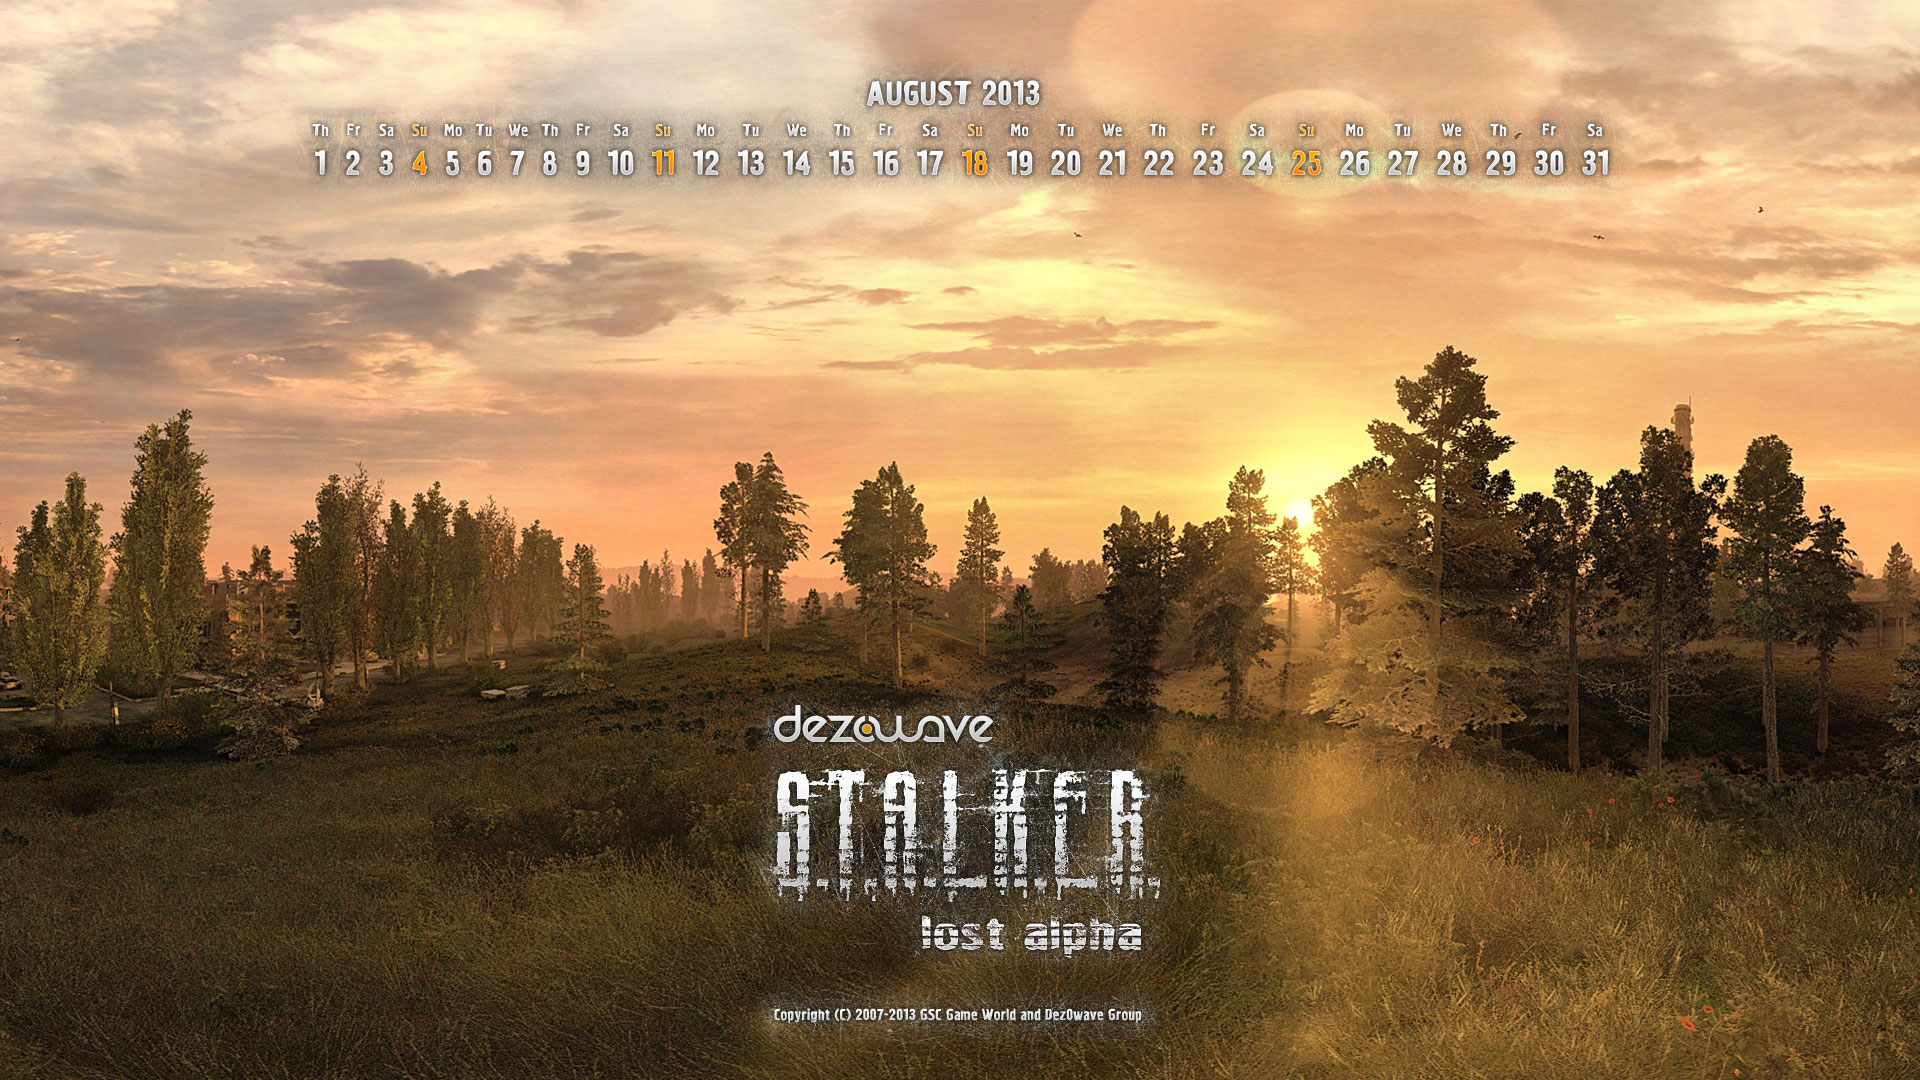 Lost Alpha Calendars for Aug 2013 image - Mod DB